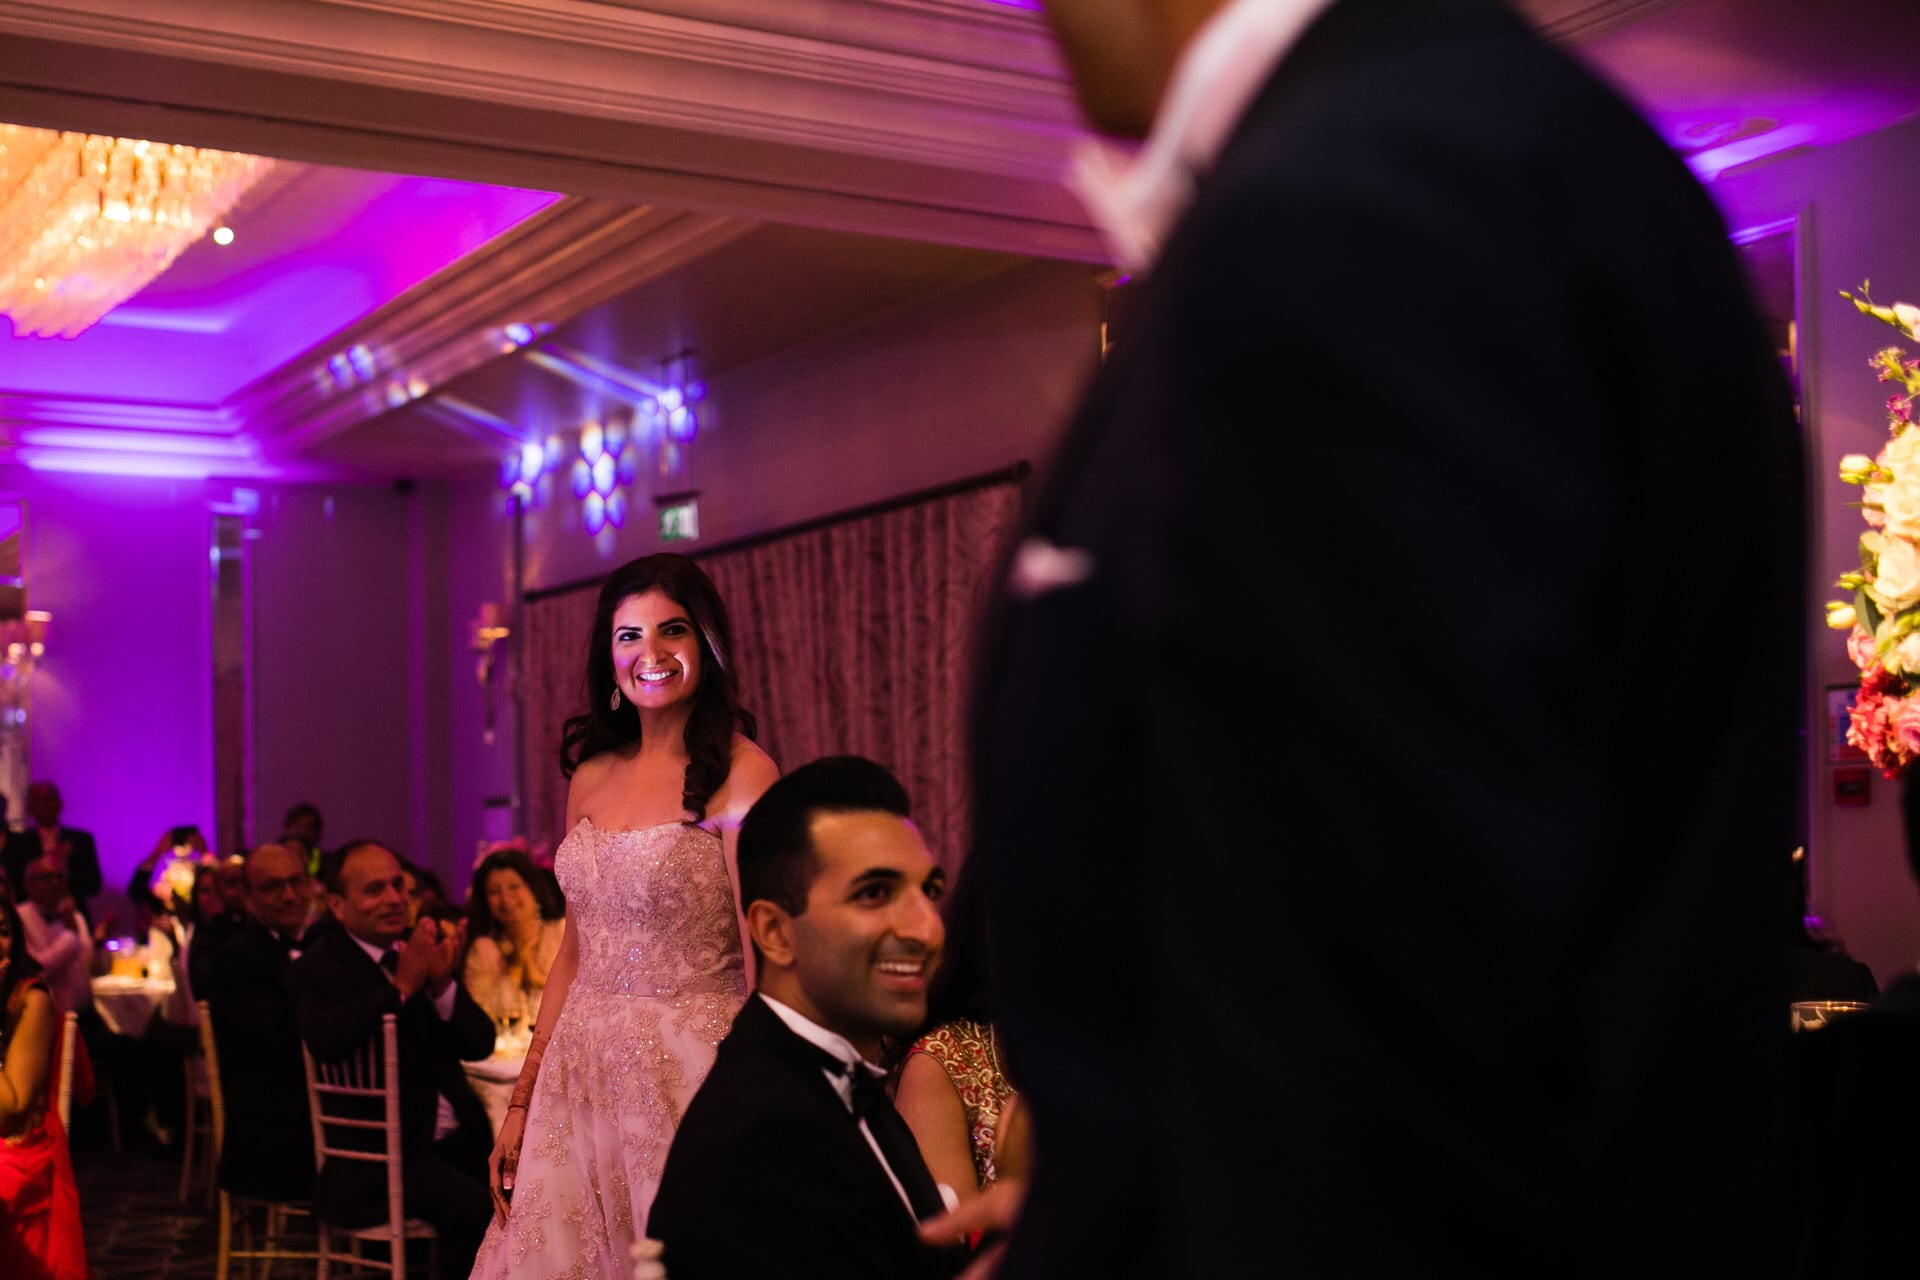 Bridal entrance during reception party